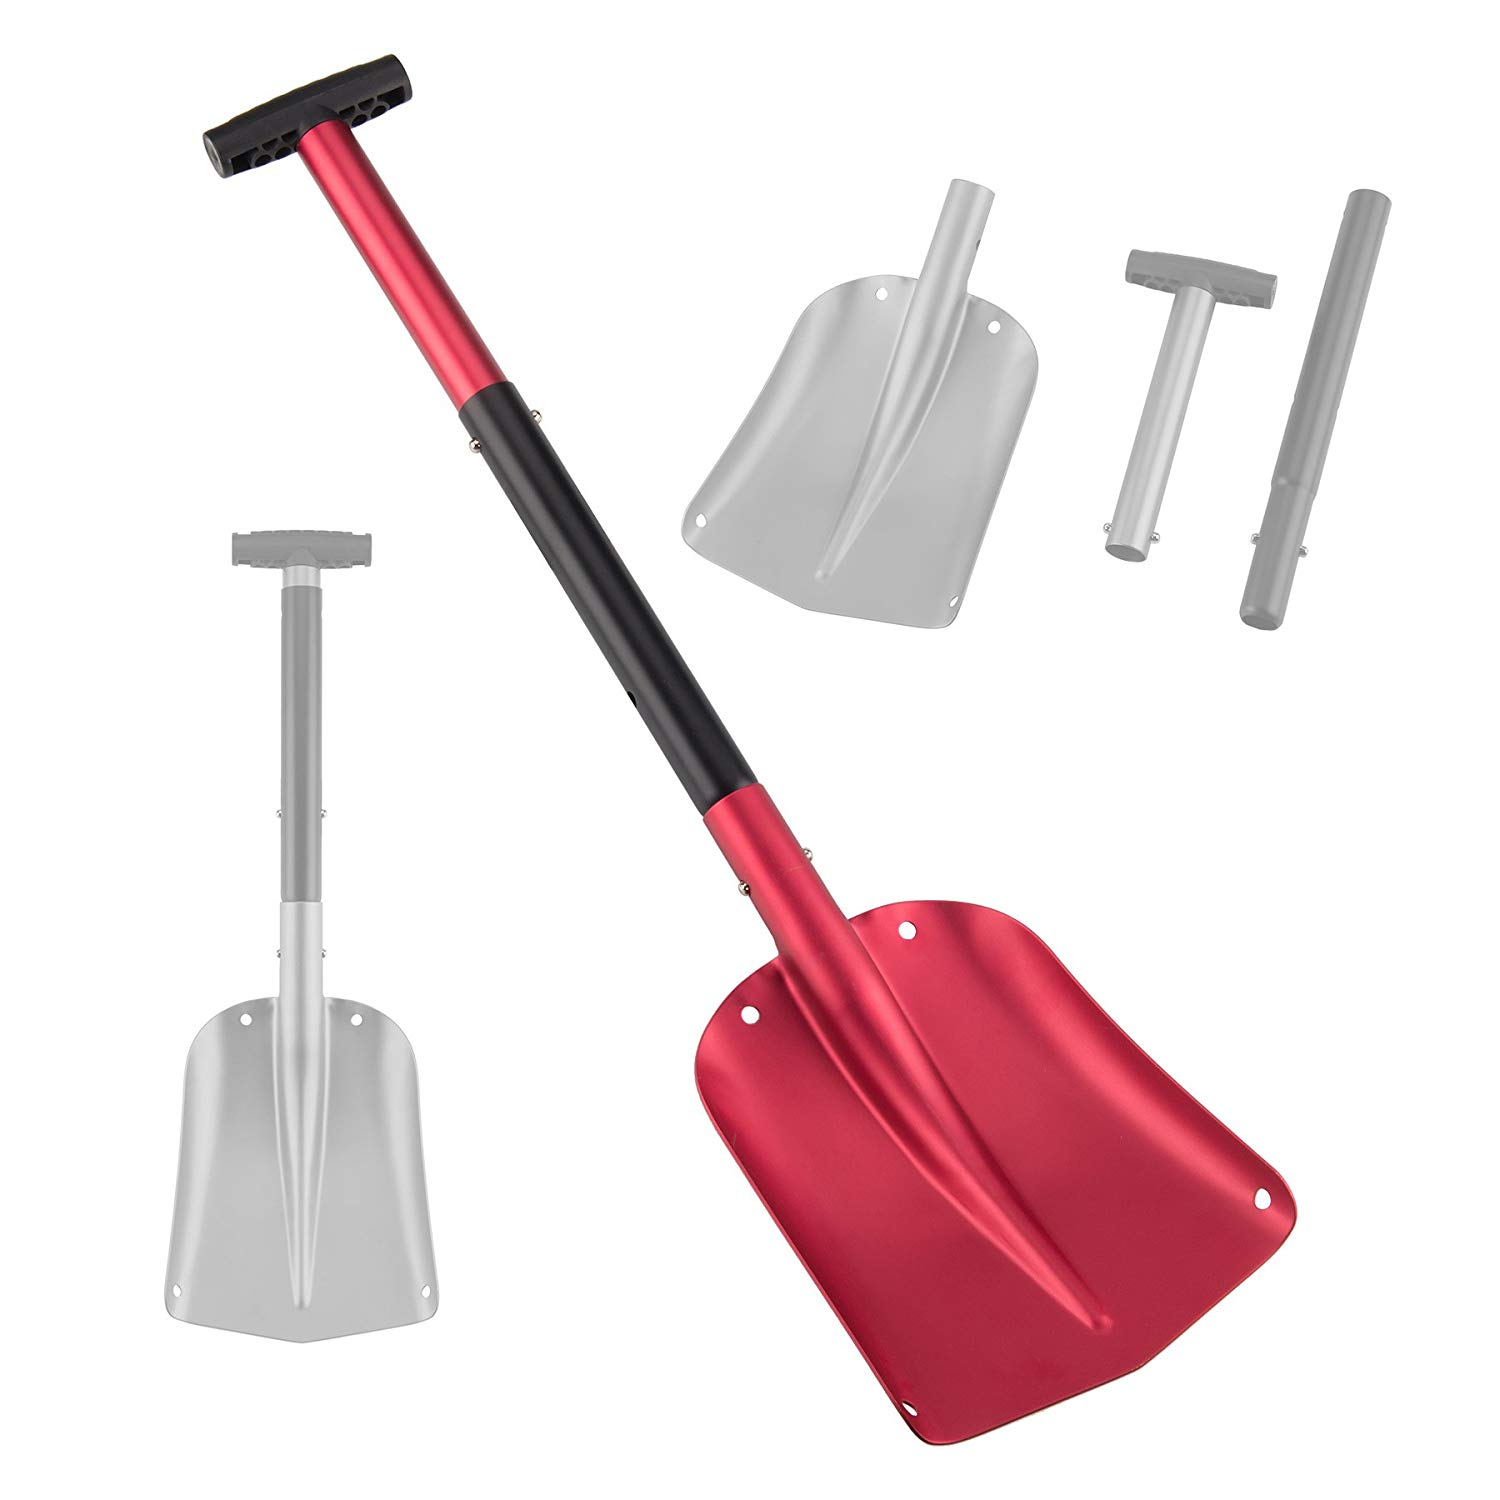 Pinty 26-32 Inch Aluminum Lightweight Utility Shovel Adjustable and Collapsible Winter Snow Shovels for Car Camping Garden (Red)